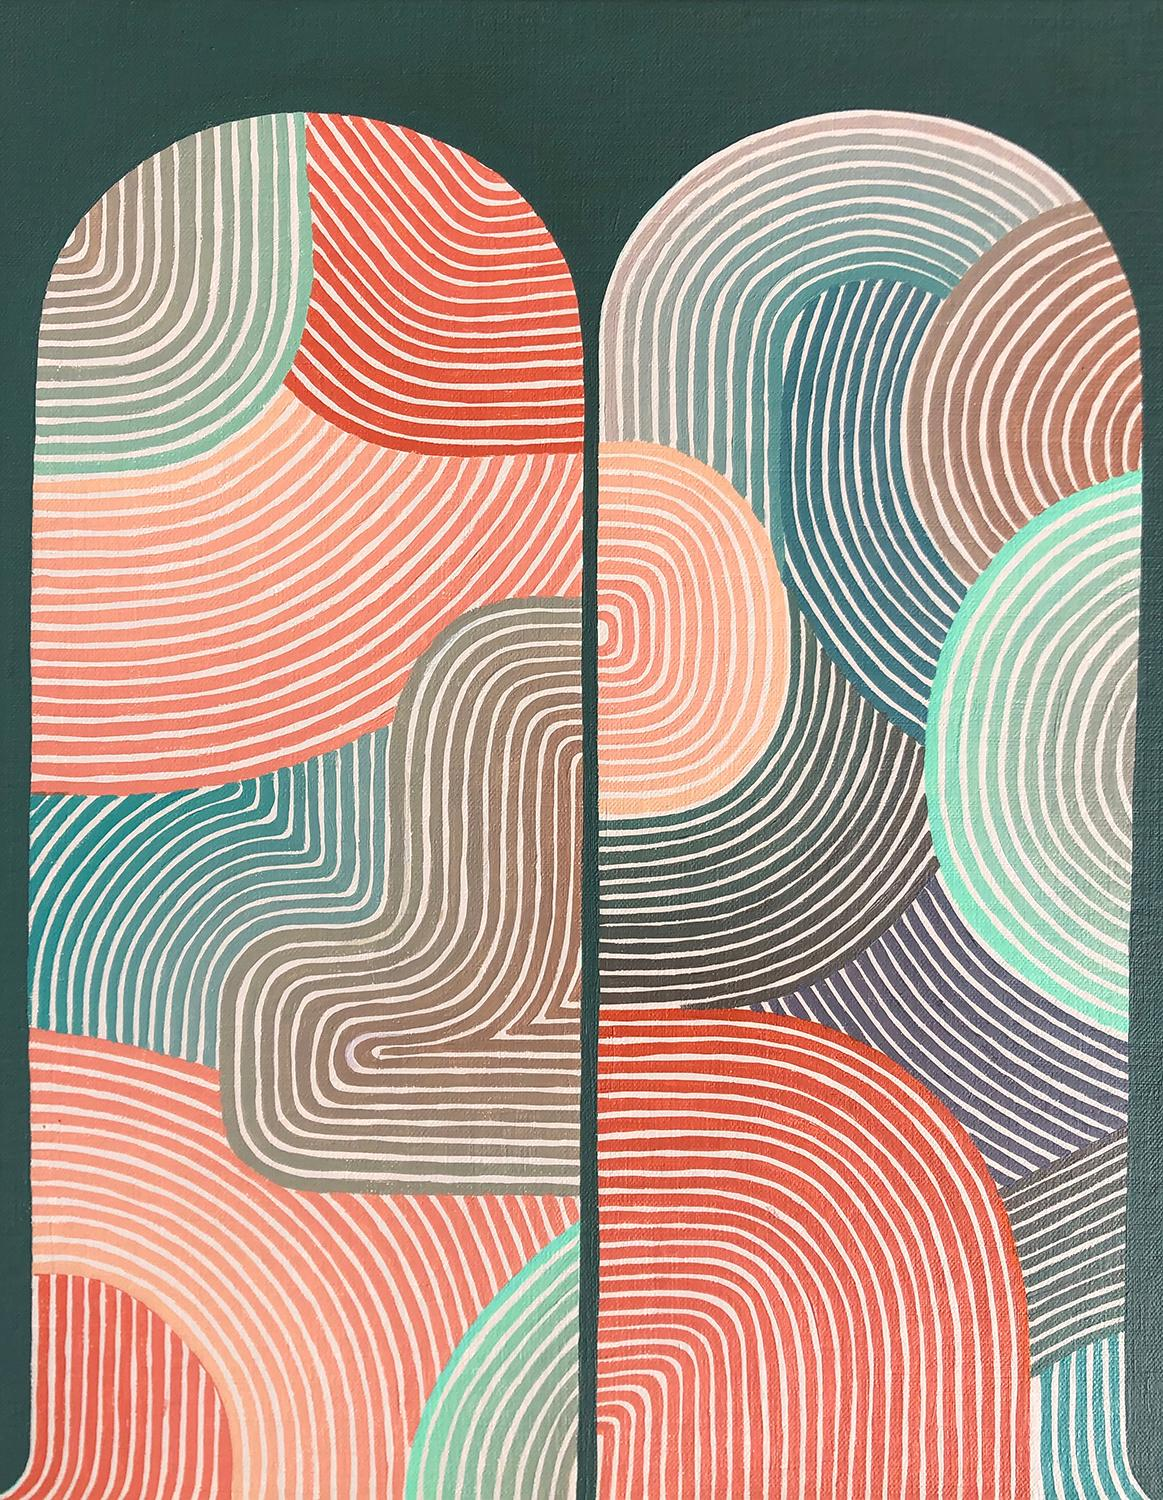 Moon (Graphic Abstract Painting in Red, Dark Teal & Yellow)